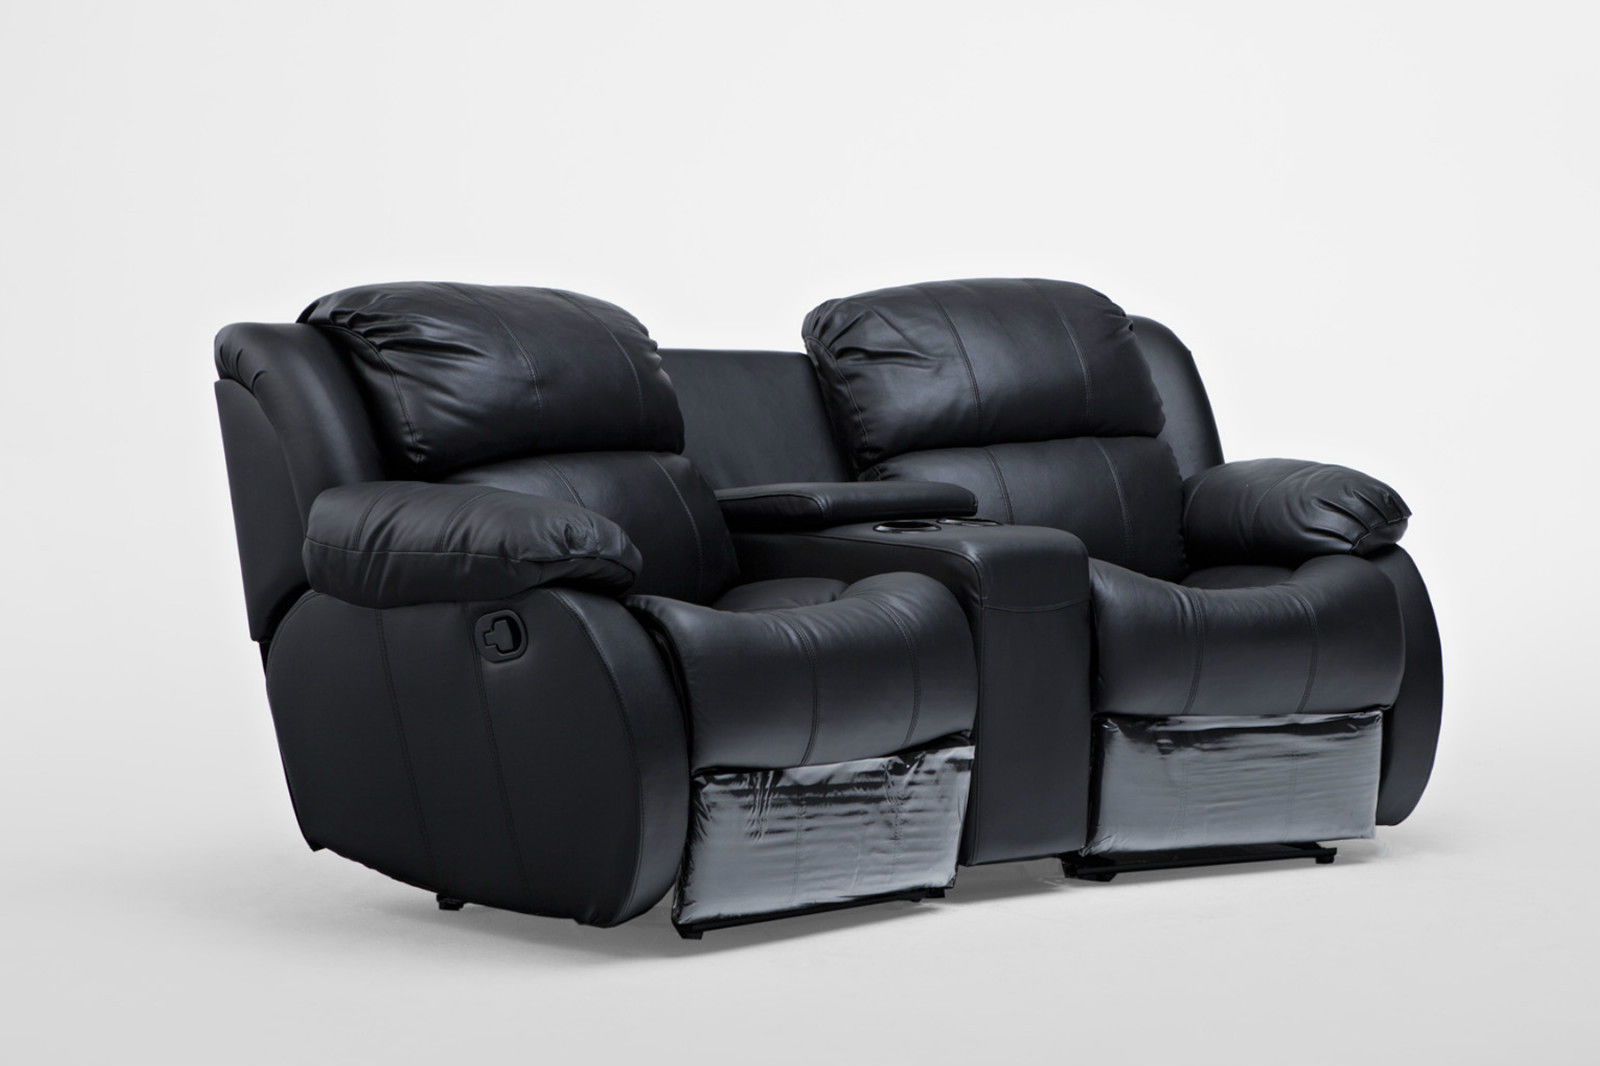 2 Seater Recliner Lounge Nikki Leather 2 Seater Home Theatre Recliner Sofa Lounge